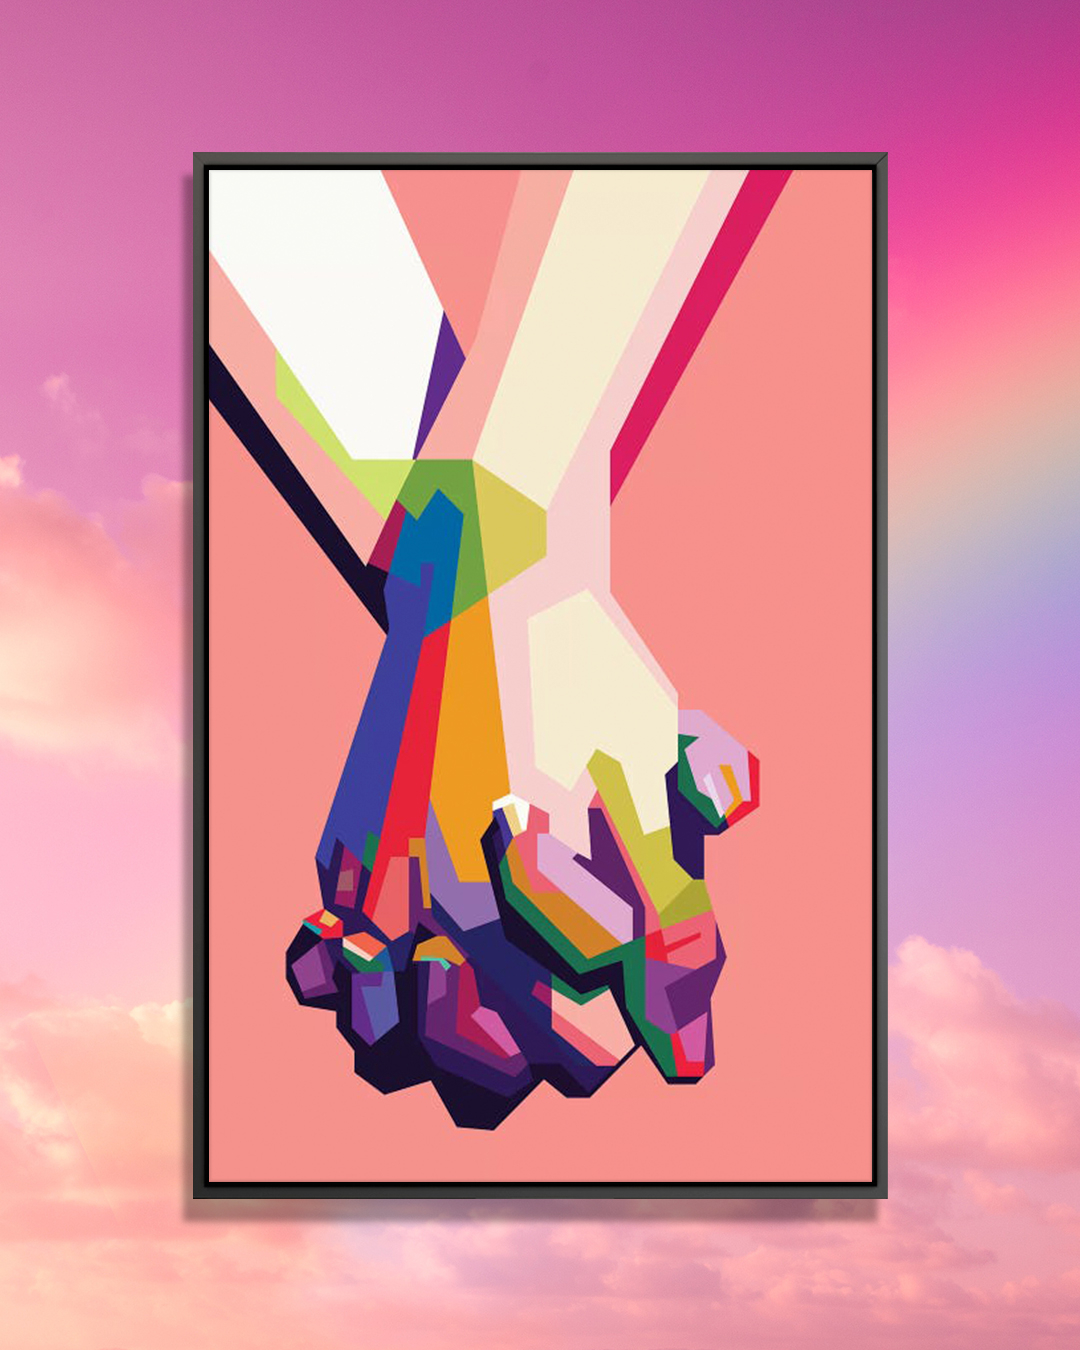 An image of two colorful hands held together against a pink background